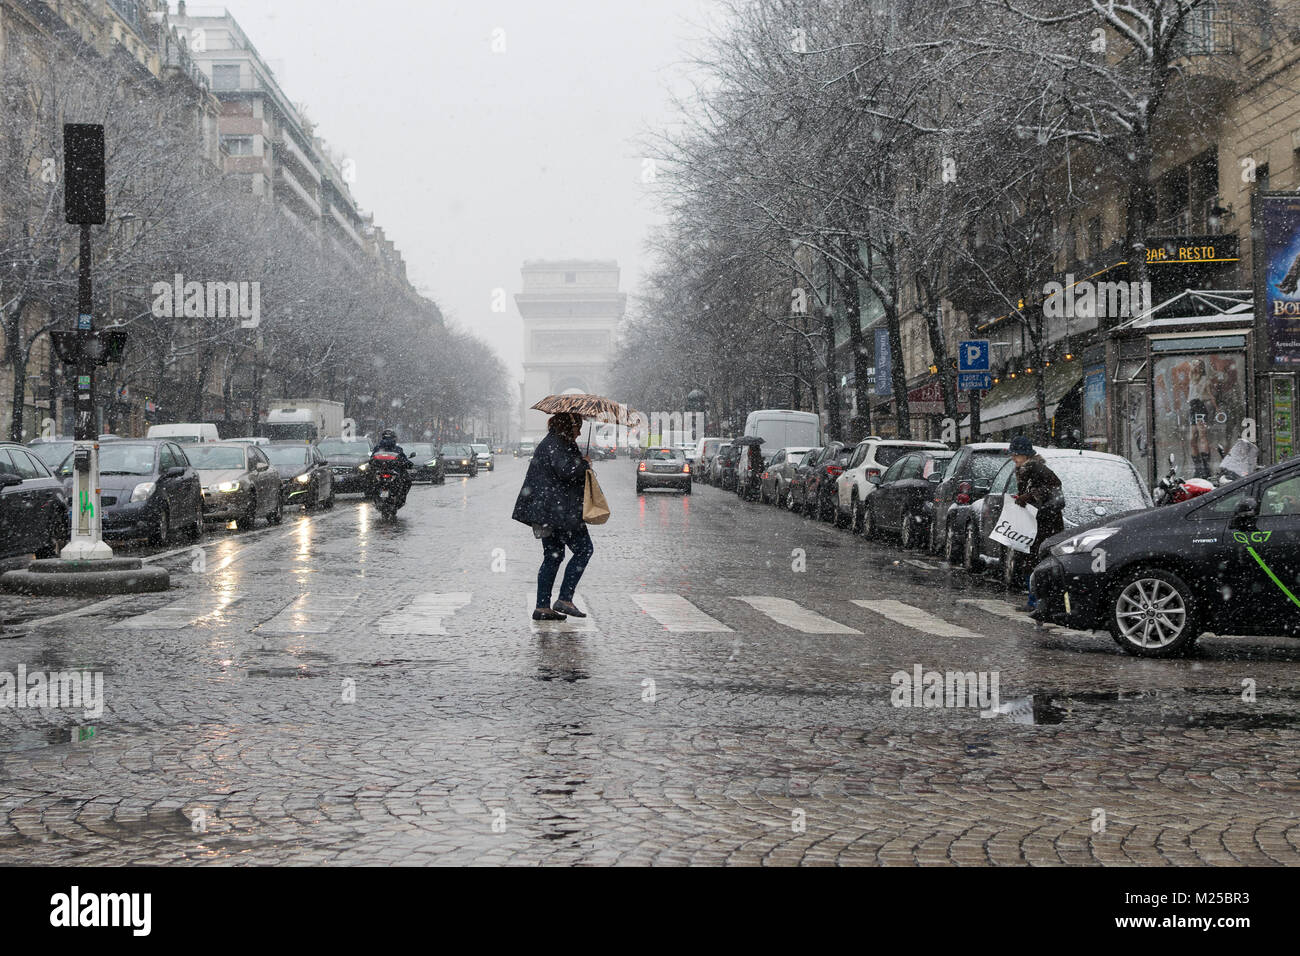 Paris France - 5th February 2018 : Snow is falling heavily in central Paris 5th February, 2018 Credit: RichFearon/Alamy - Stock Image